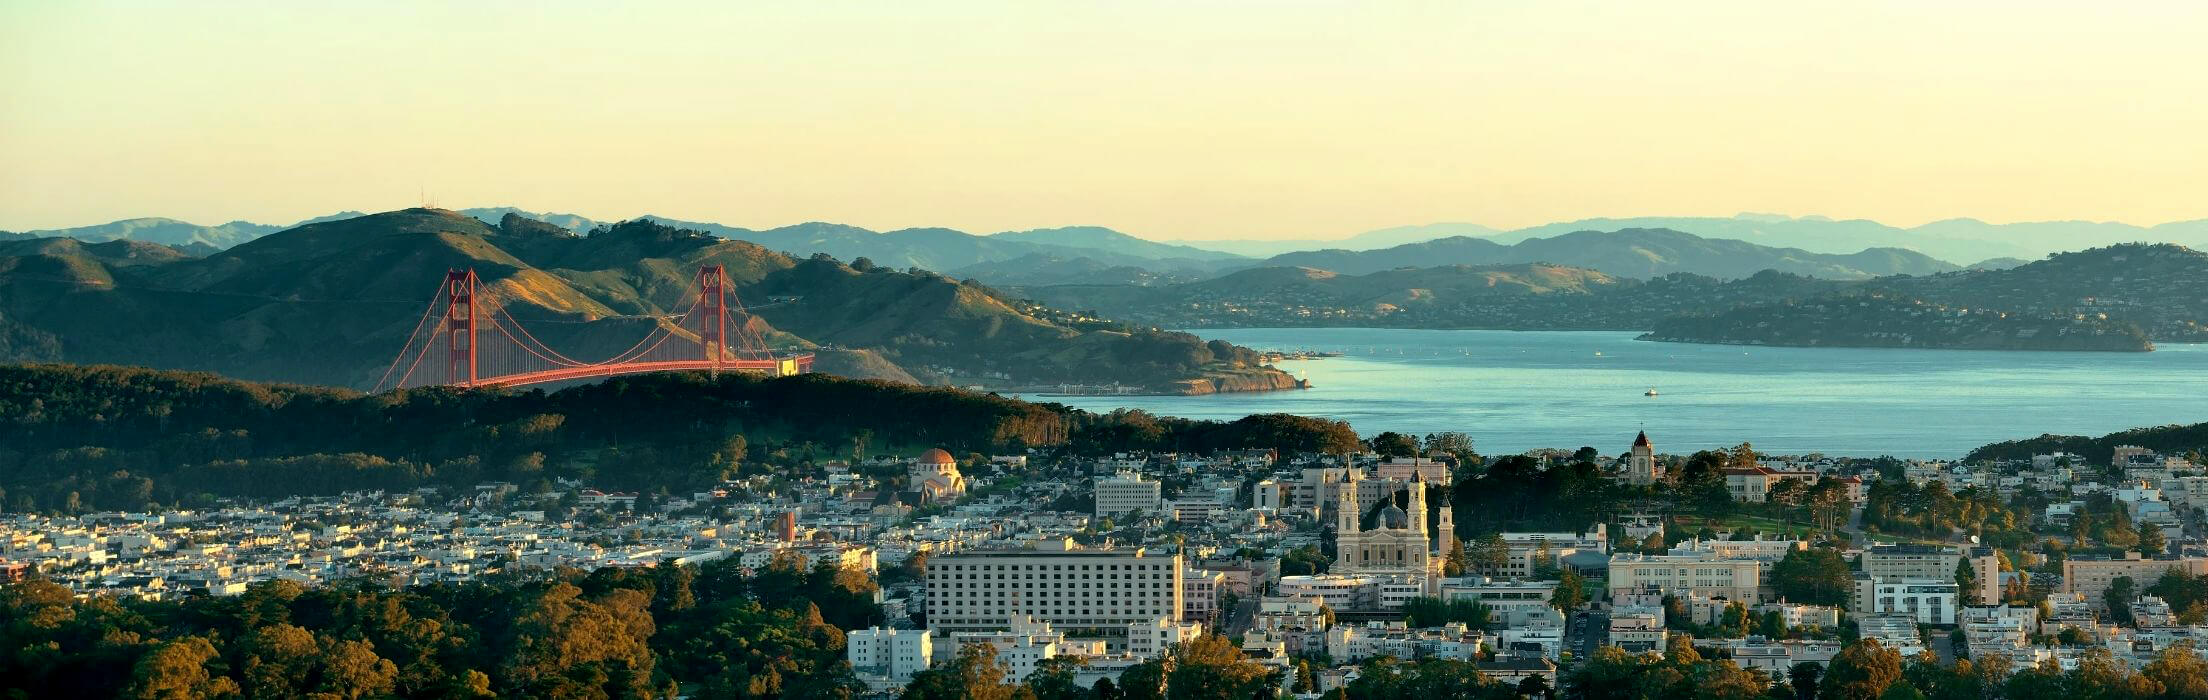 panoramic view of the San Francisco Bay Area